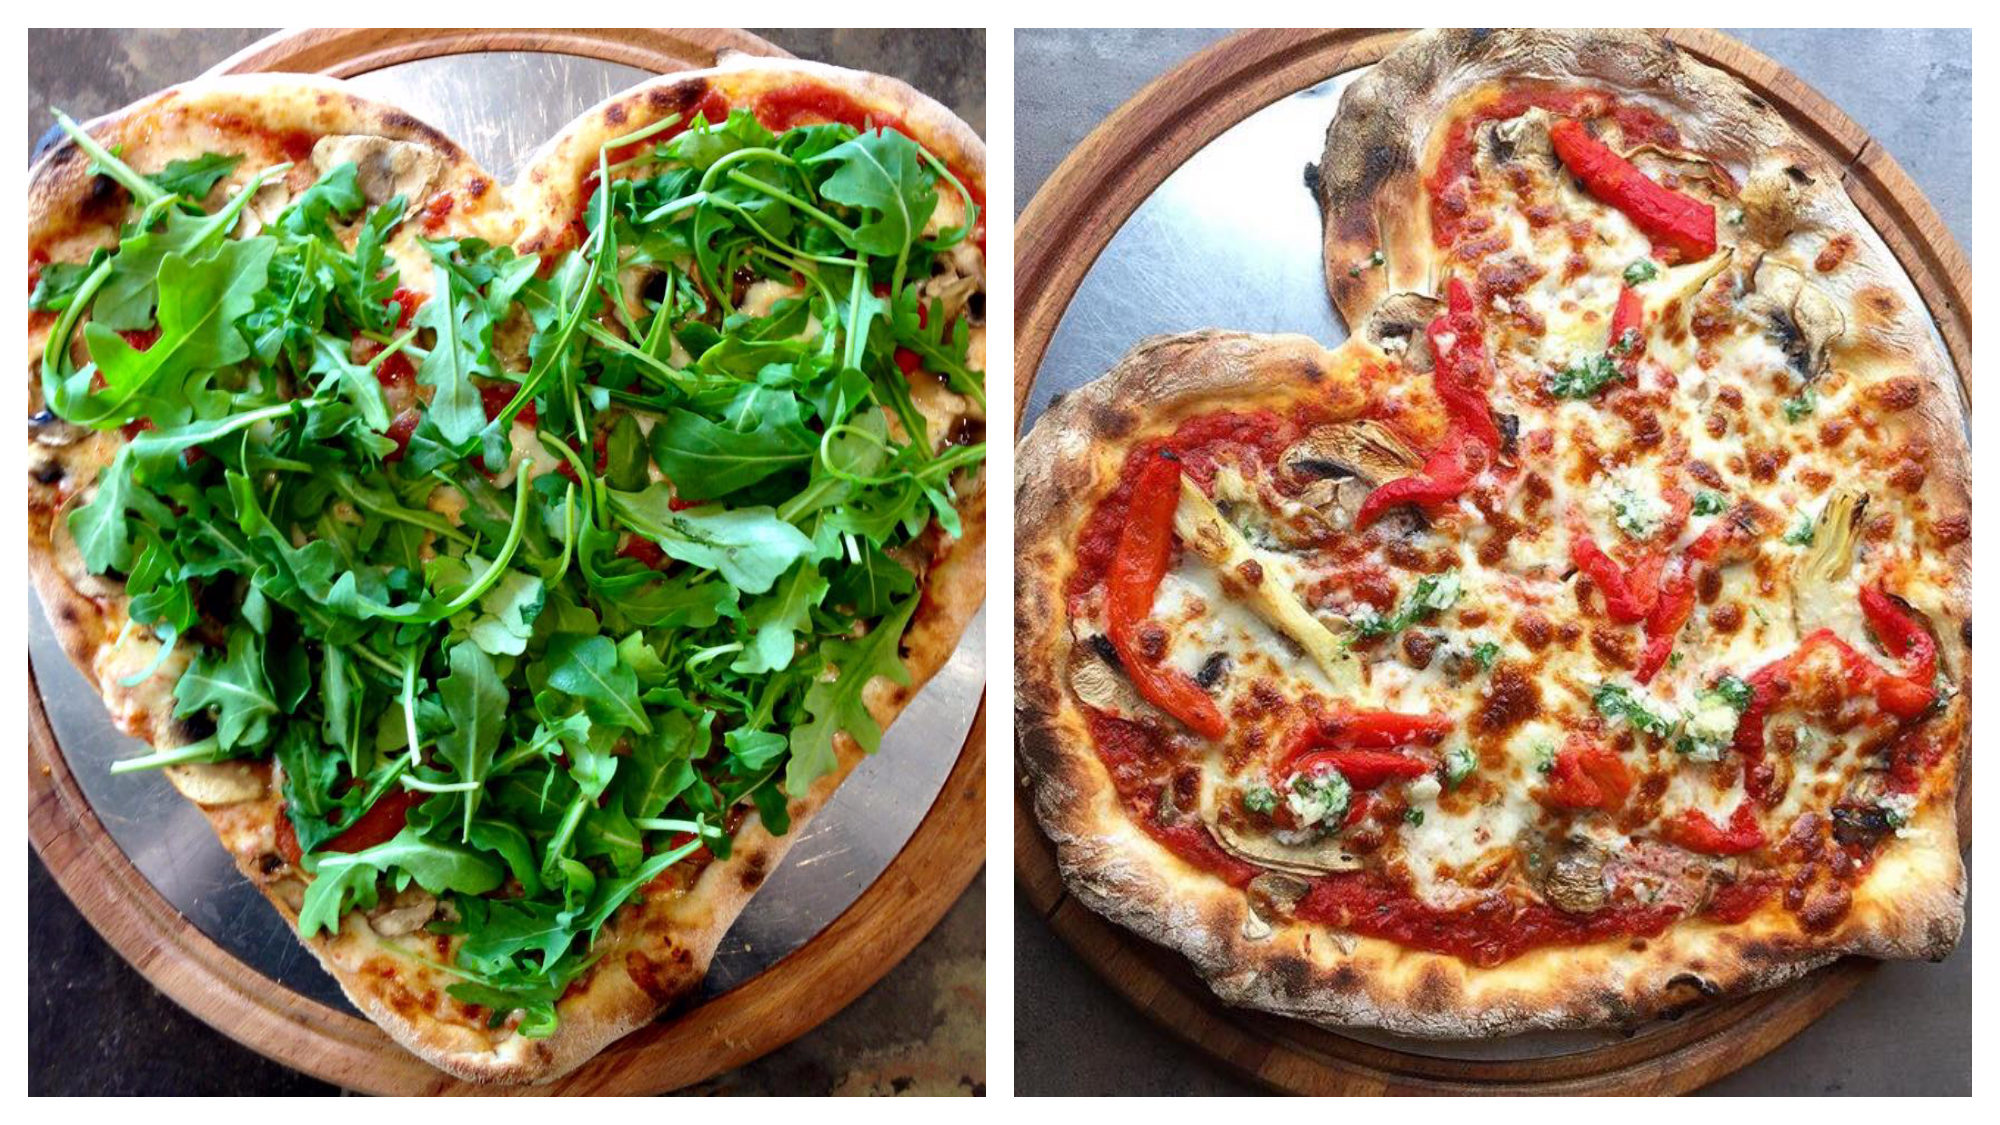 Heart-shaped gluten-free pizzas from Il Quadrifoglio in Paris. One has plenty of rocket leaves (left) and the other red peppers (right).